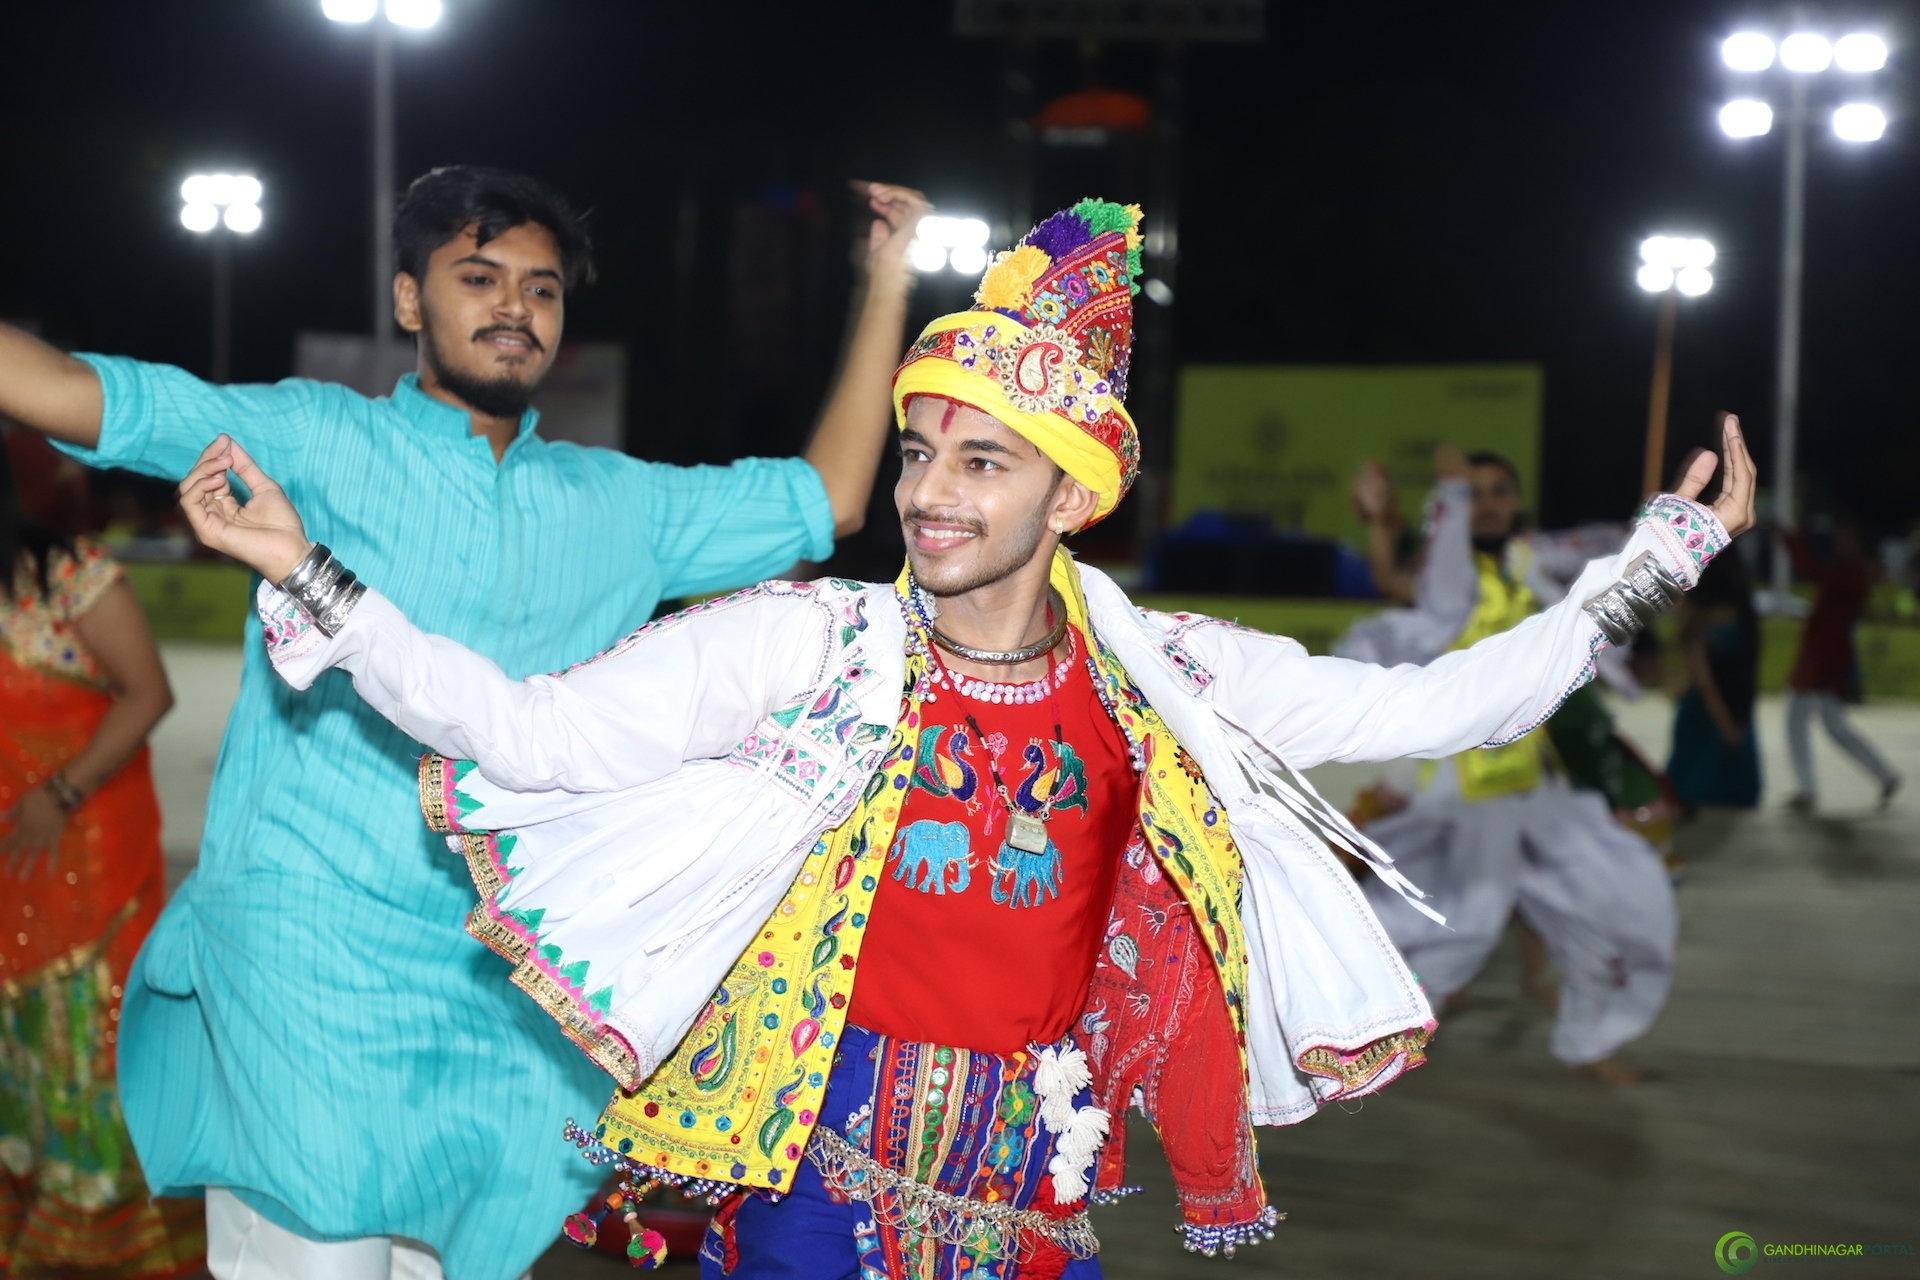 Live Images of Gandhinagar Culture Forum Navratri 2019 Day 1 Gandhinagar, Gujarat, India.